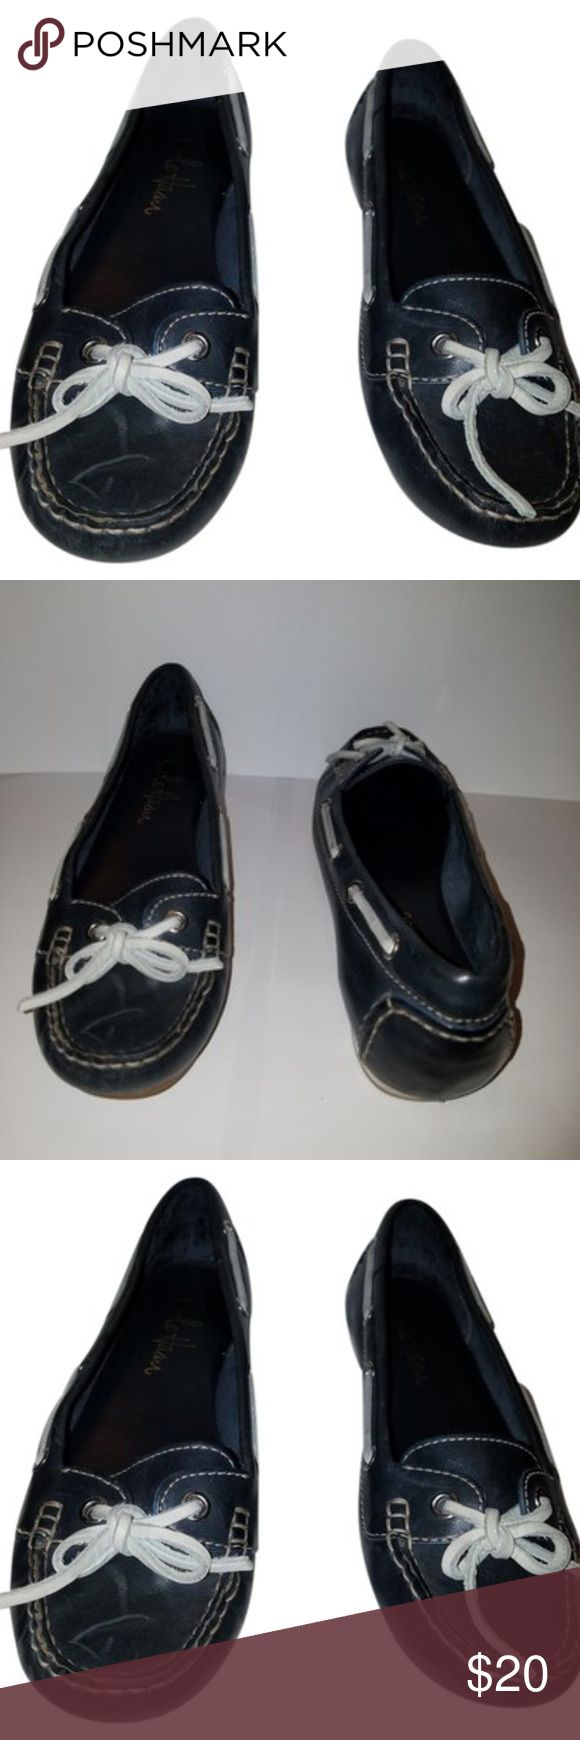 Cole Haan Women Navy Blue Boat Shoes 6M Cole Haan Navy blue boat shoes good clean condition  some minimal wear but very clean size 6 m womens Cole Haan Shoes Flats & Loafers